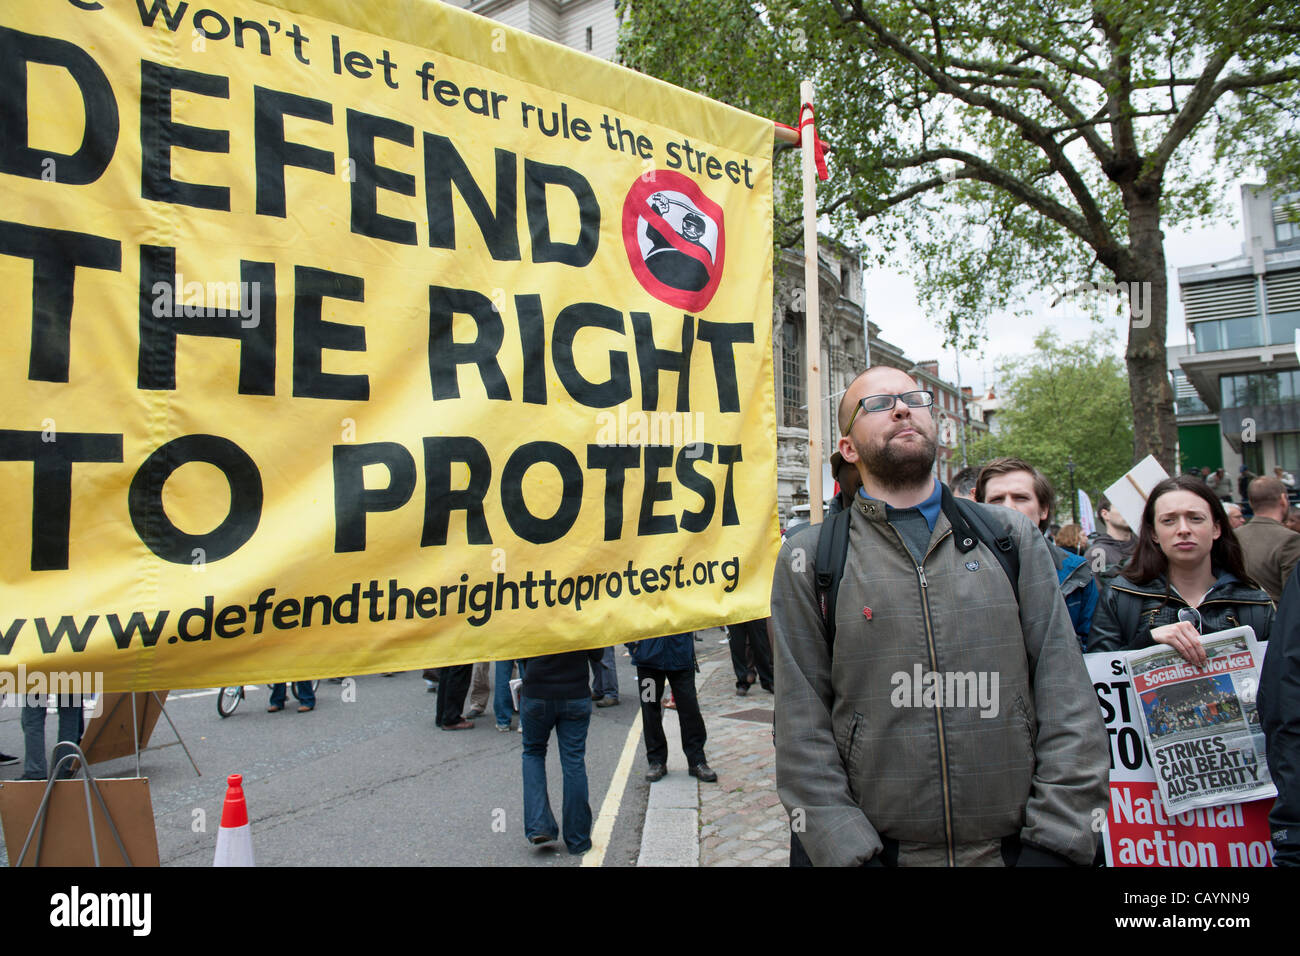 Banner proclaiming the right to protest being held in central London with activists selling Socialist Worker newspaper. - Stock Image